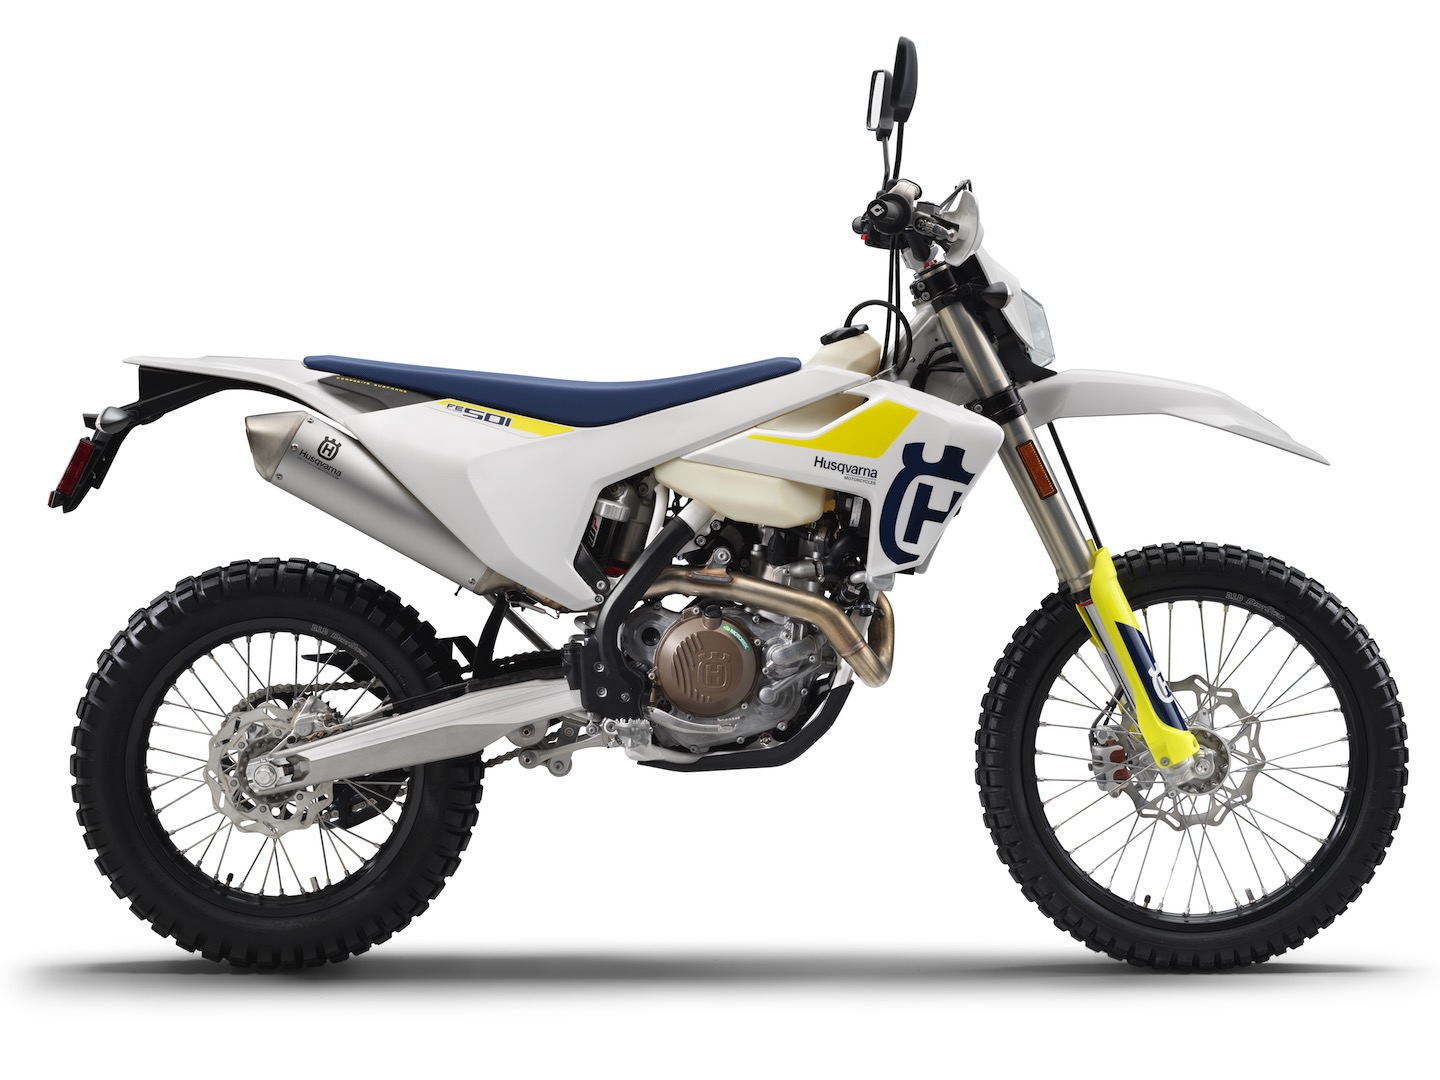 hight resolution of 2019 husqvarna dual sport motorcycles first look fe 250 to fe 501fe 501 wiring diagram